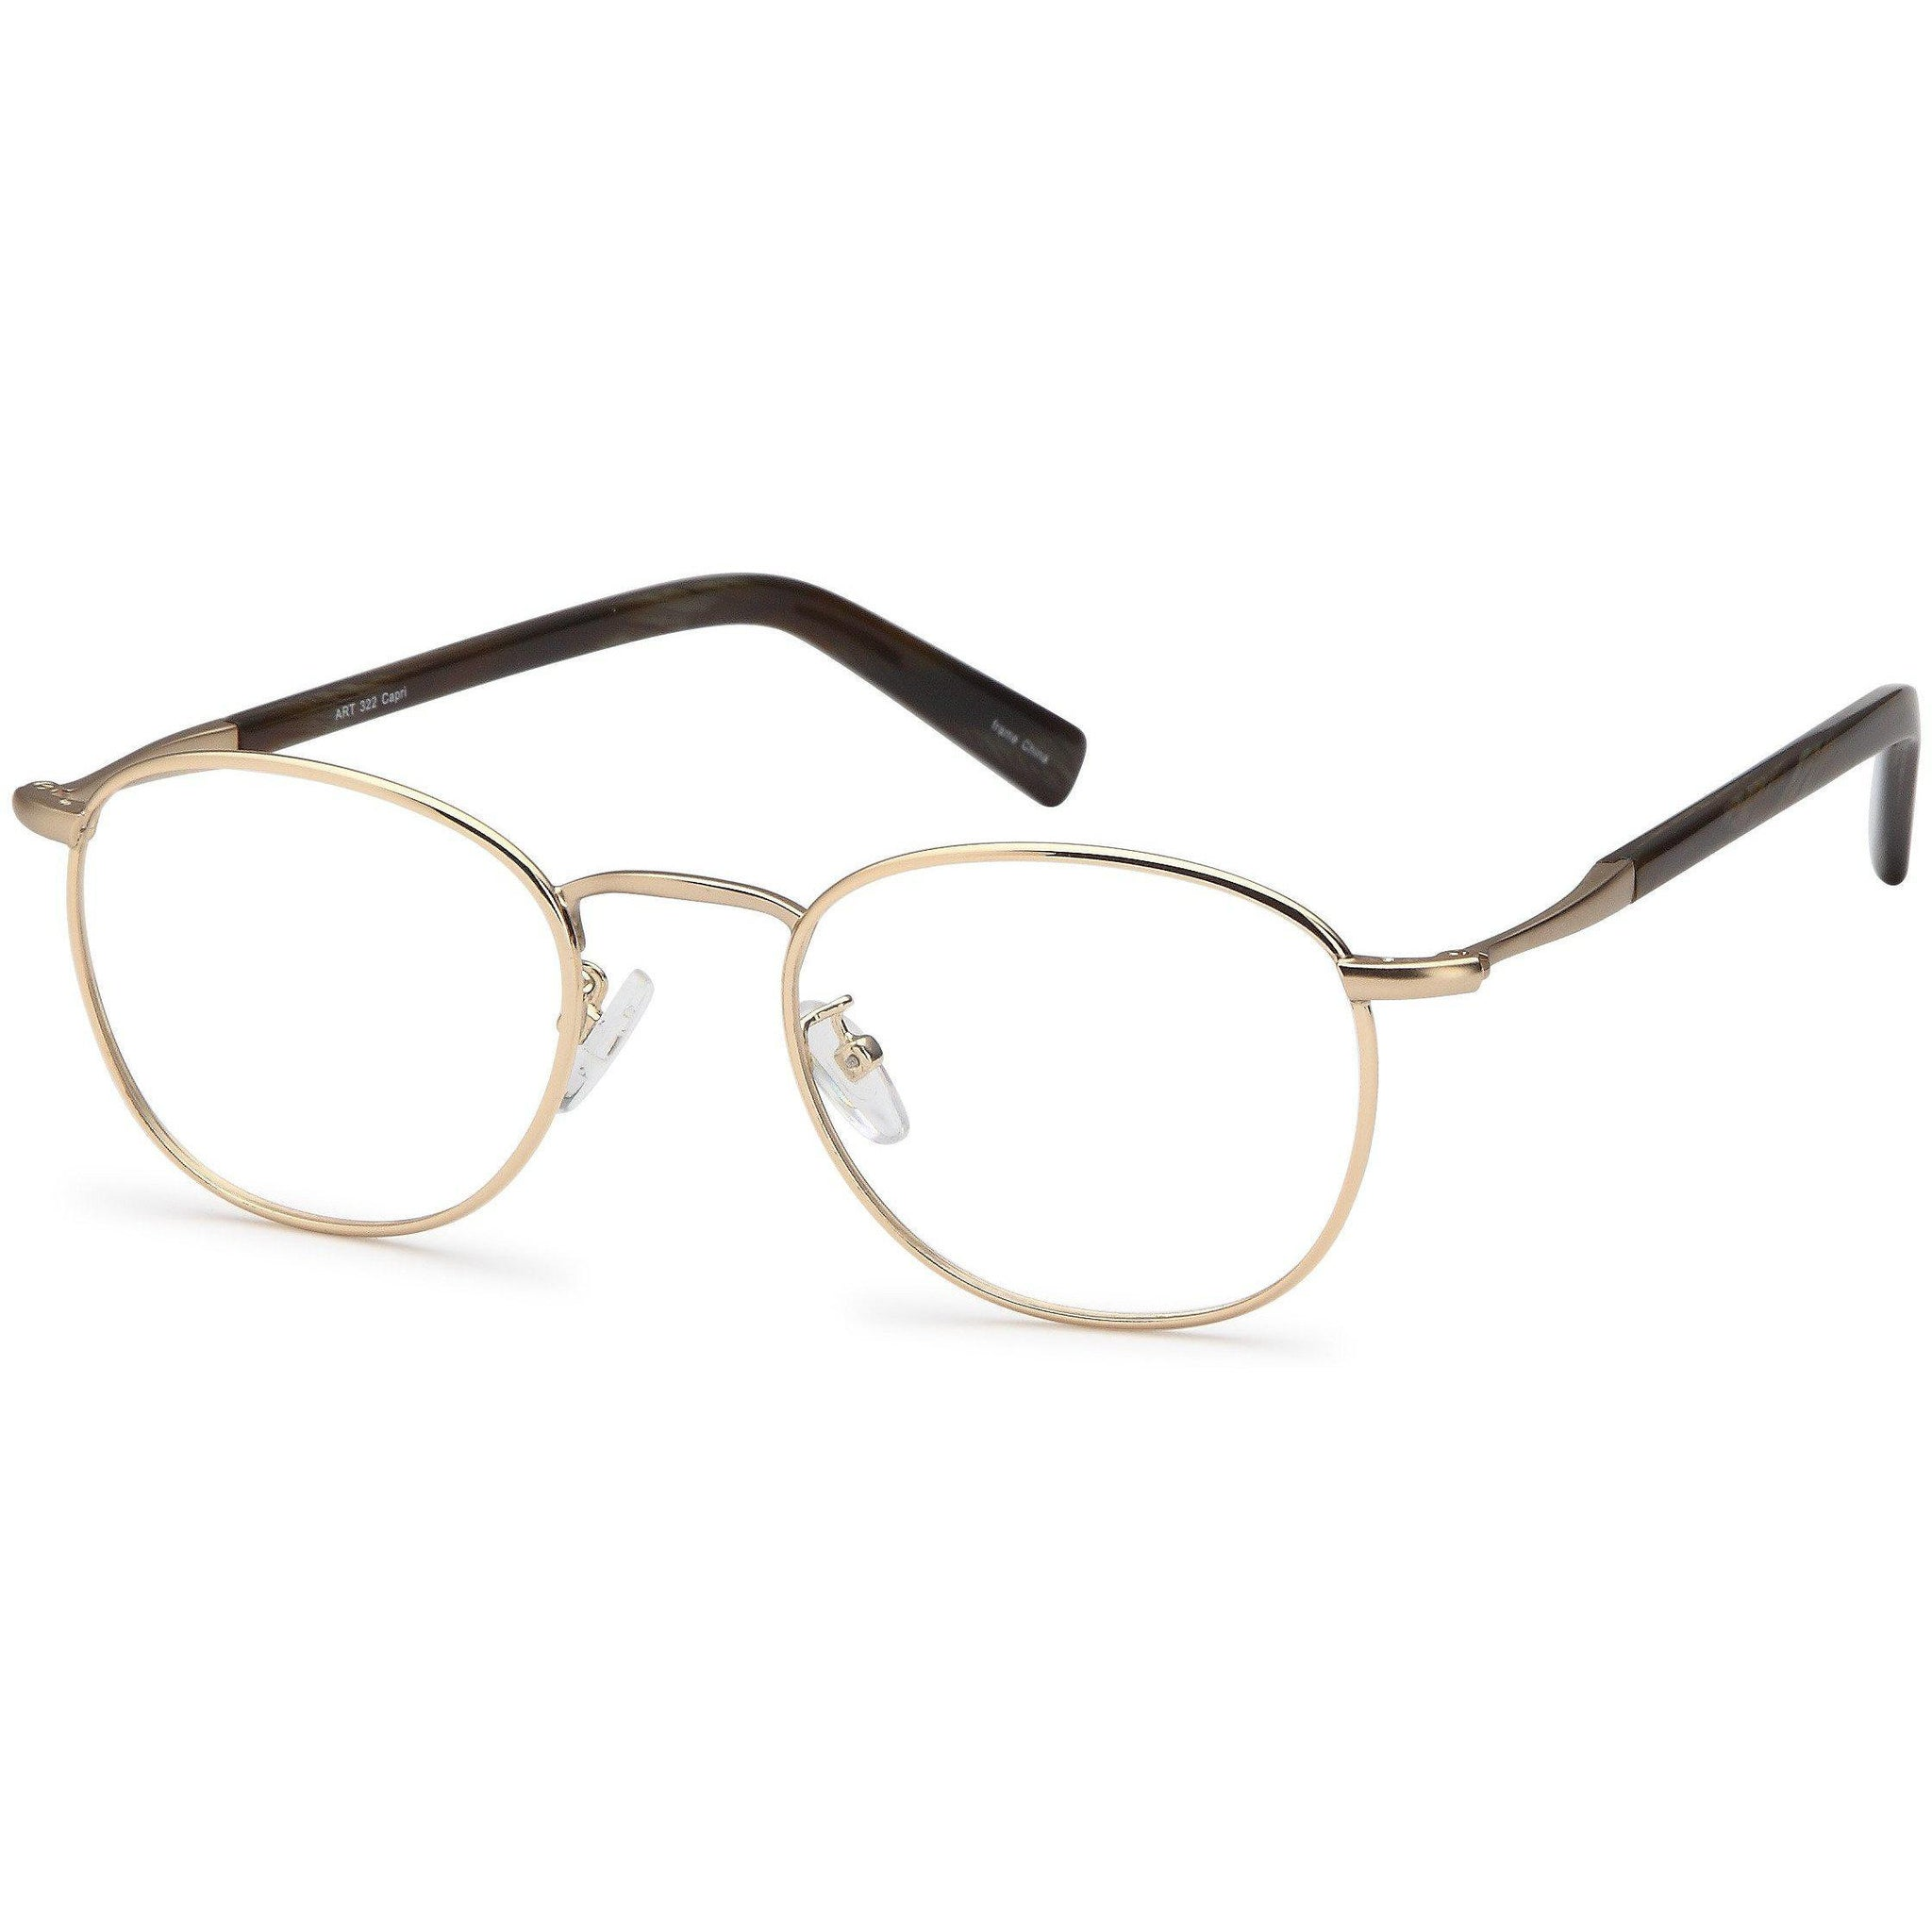 Sophistics Prescription Glasses ART 322 Frame